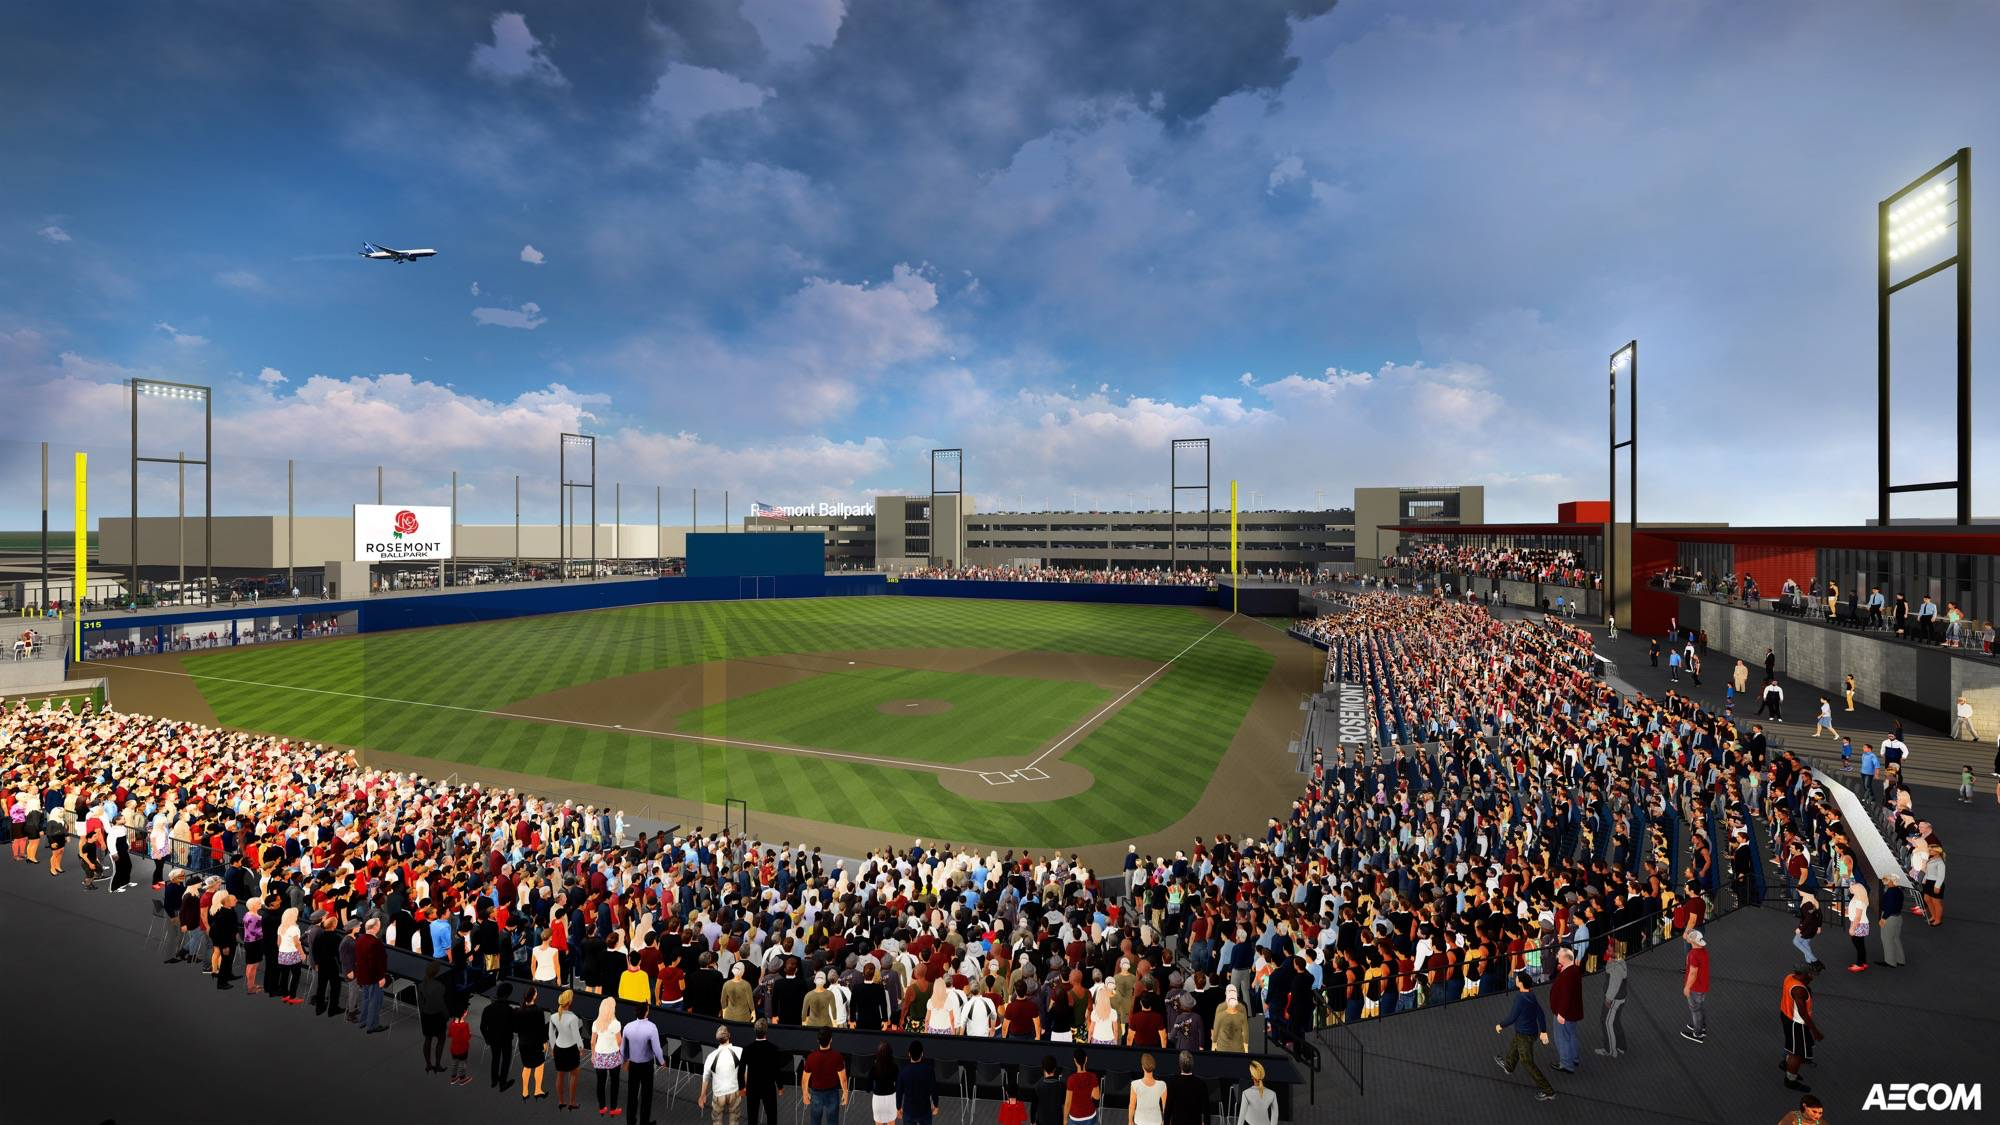 Owners: Few things minor about new Rosemont baseball franchise